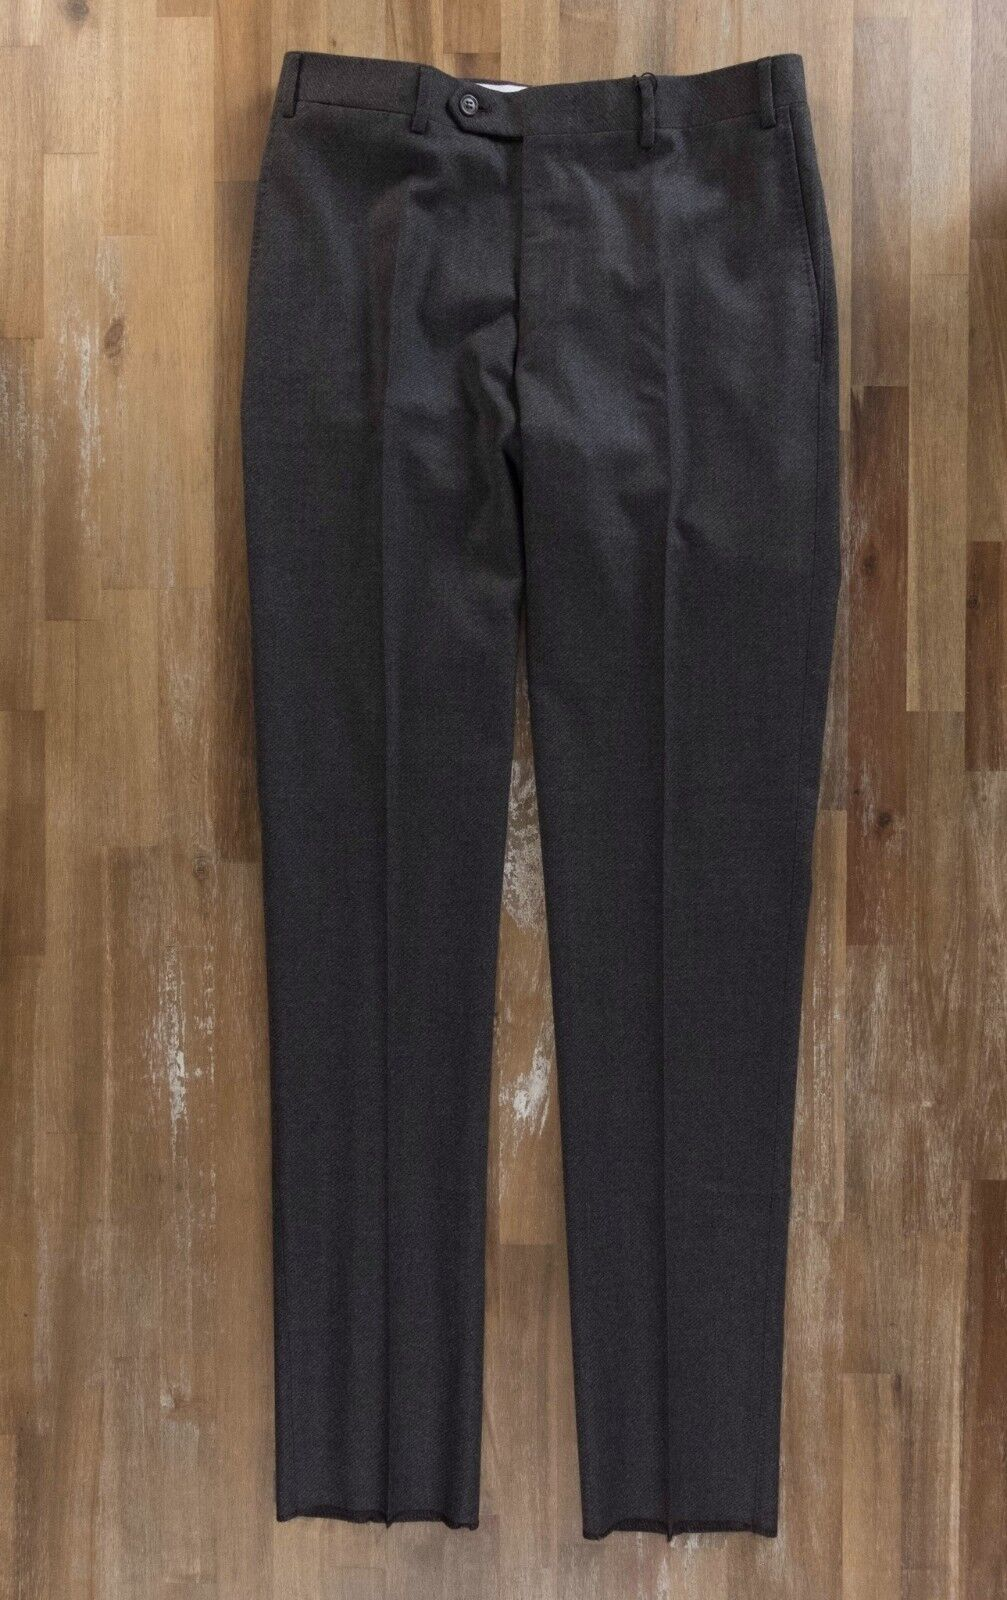 CANALI brown wool stretch pants trousers authentic - Size 32 US   48 NWOT